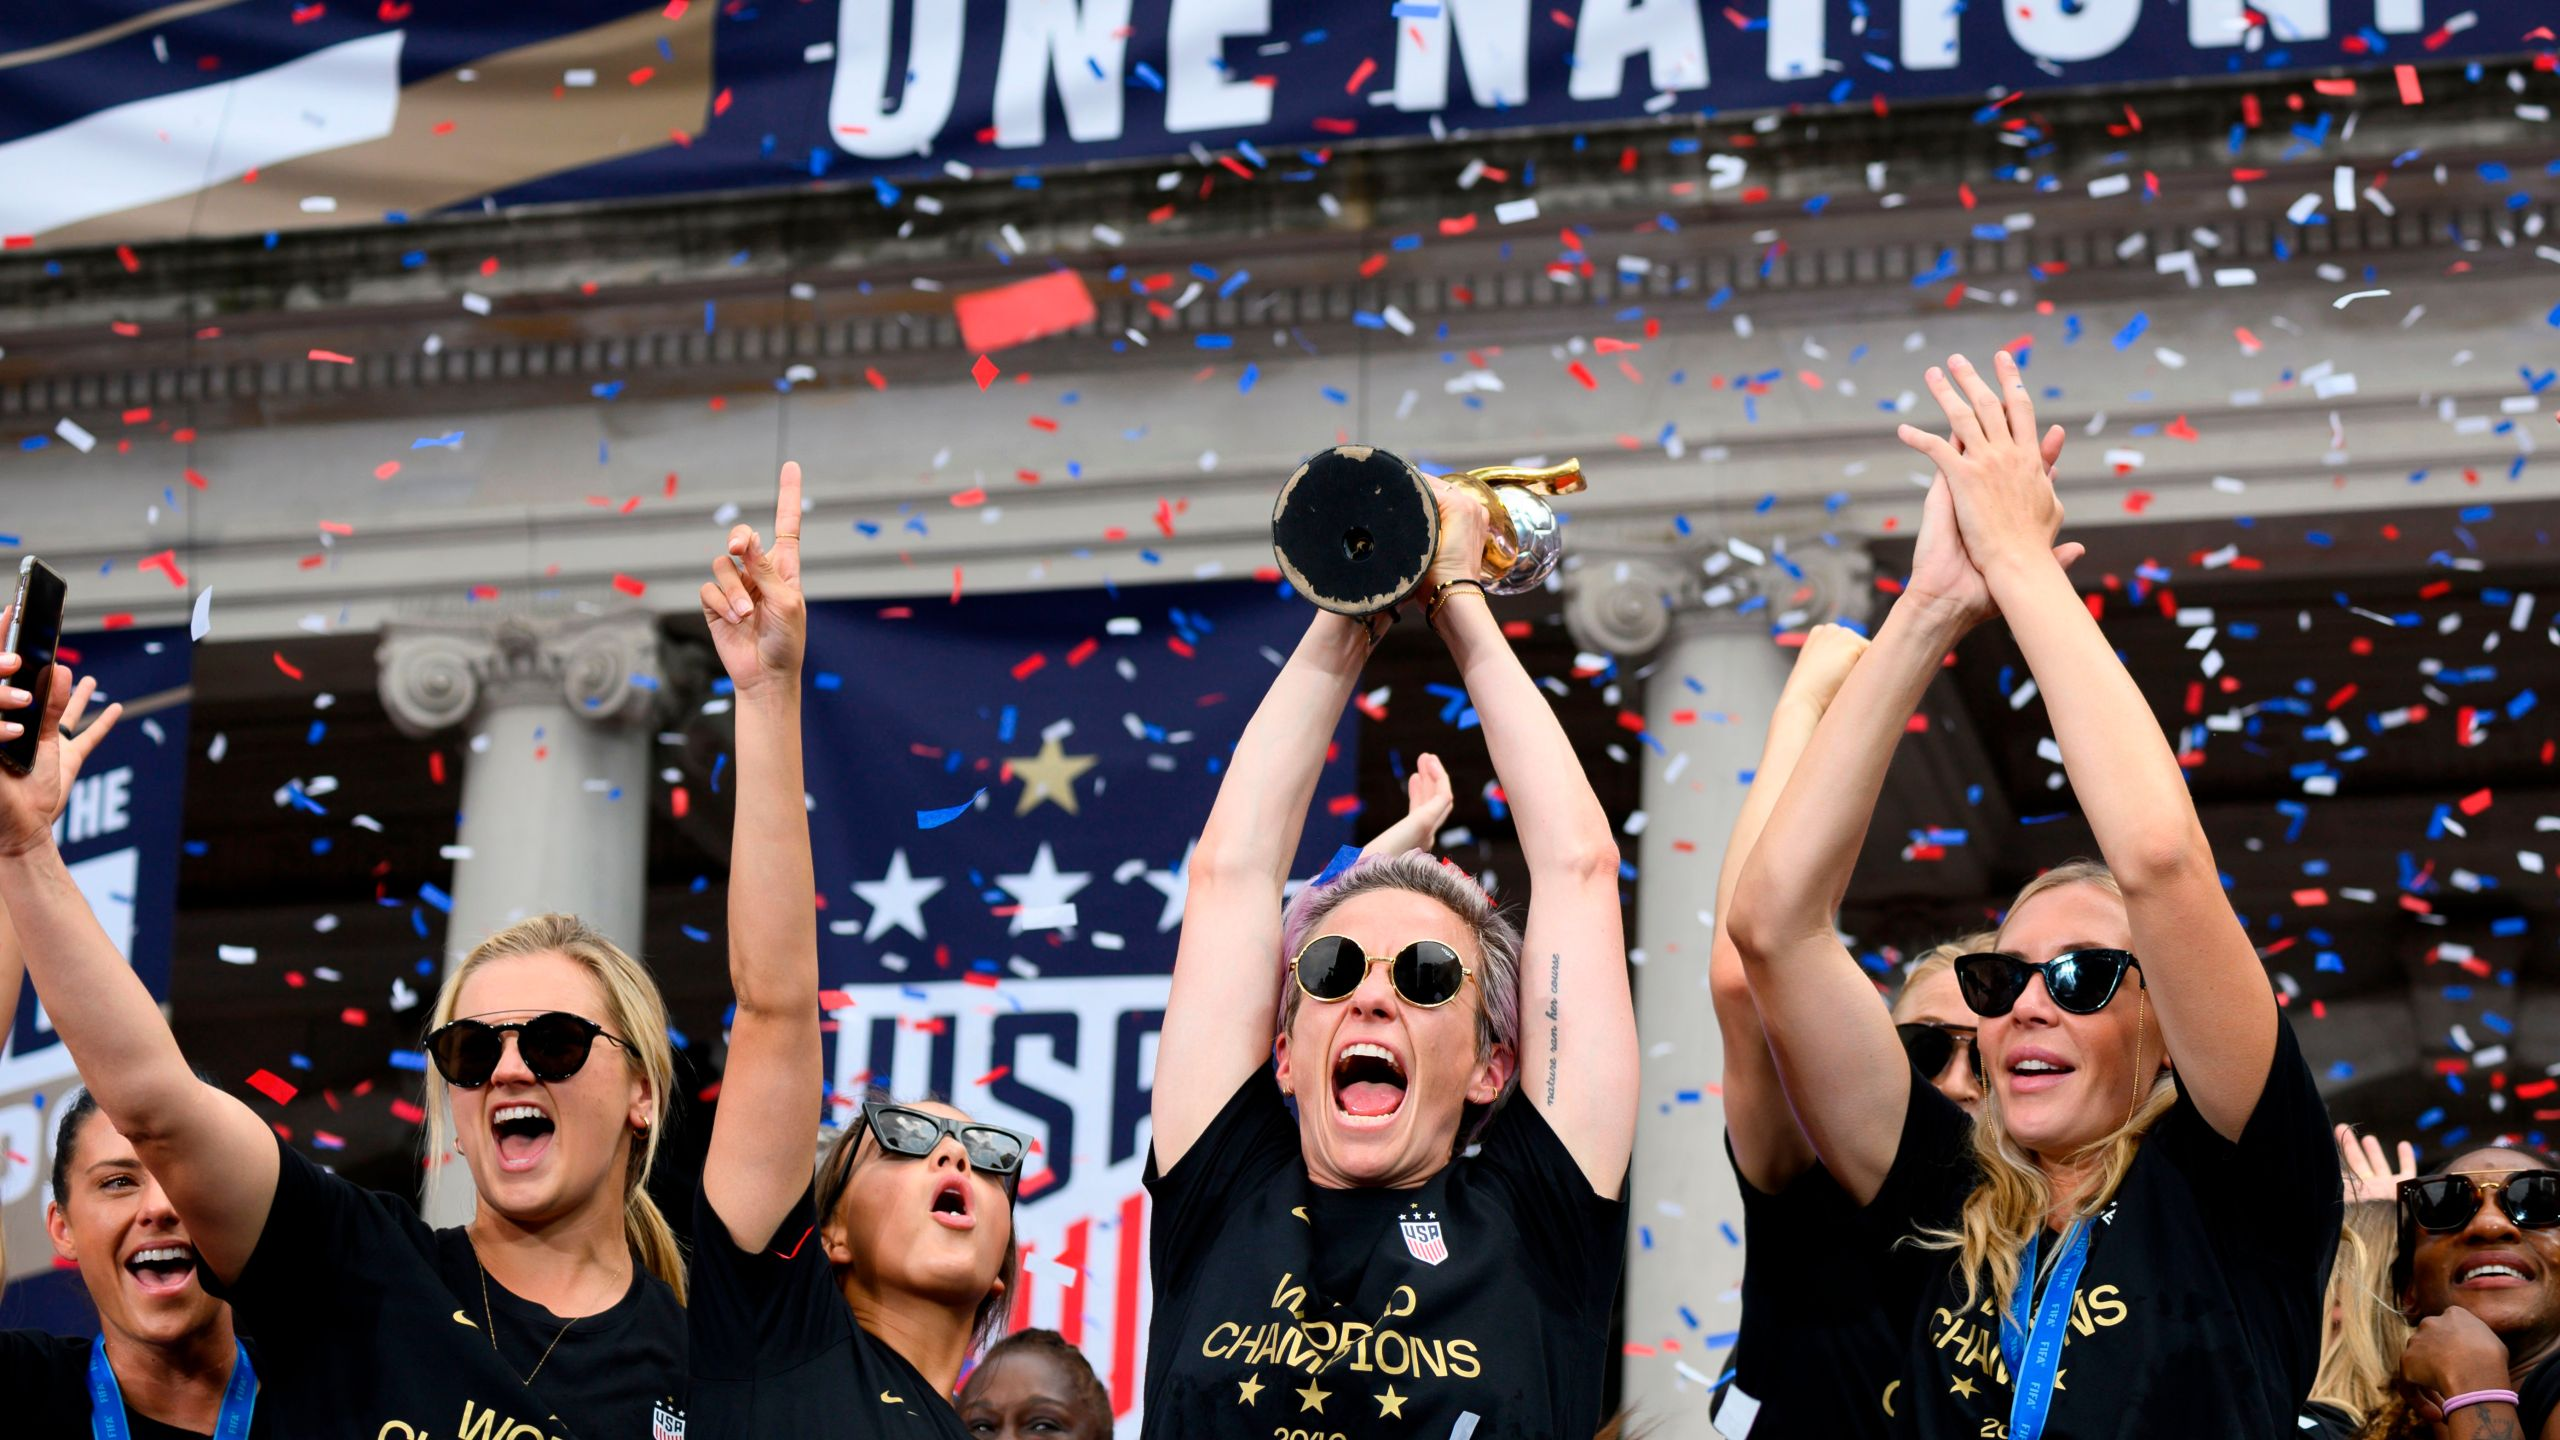 Megan Rapinoe and her team members celebrate with the trophy in front of the City Hall after the ticker tape parade for the women's World Cup champions on July 10, 2019 in New York. (Credit: JOHANNES EISELE/AFP/Getty Images)